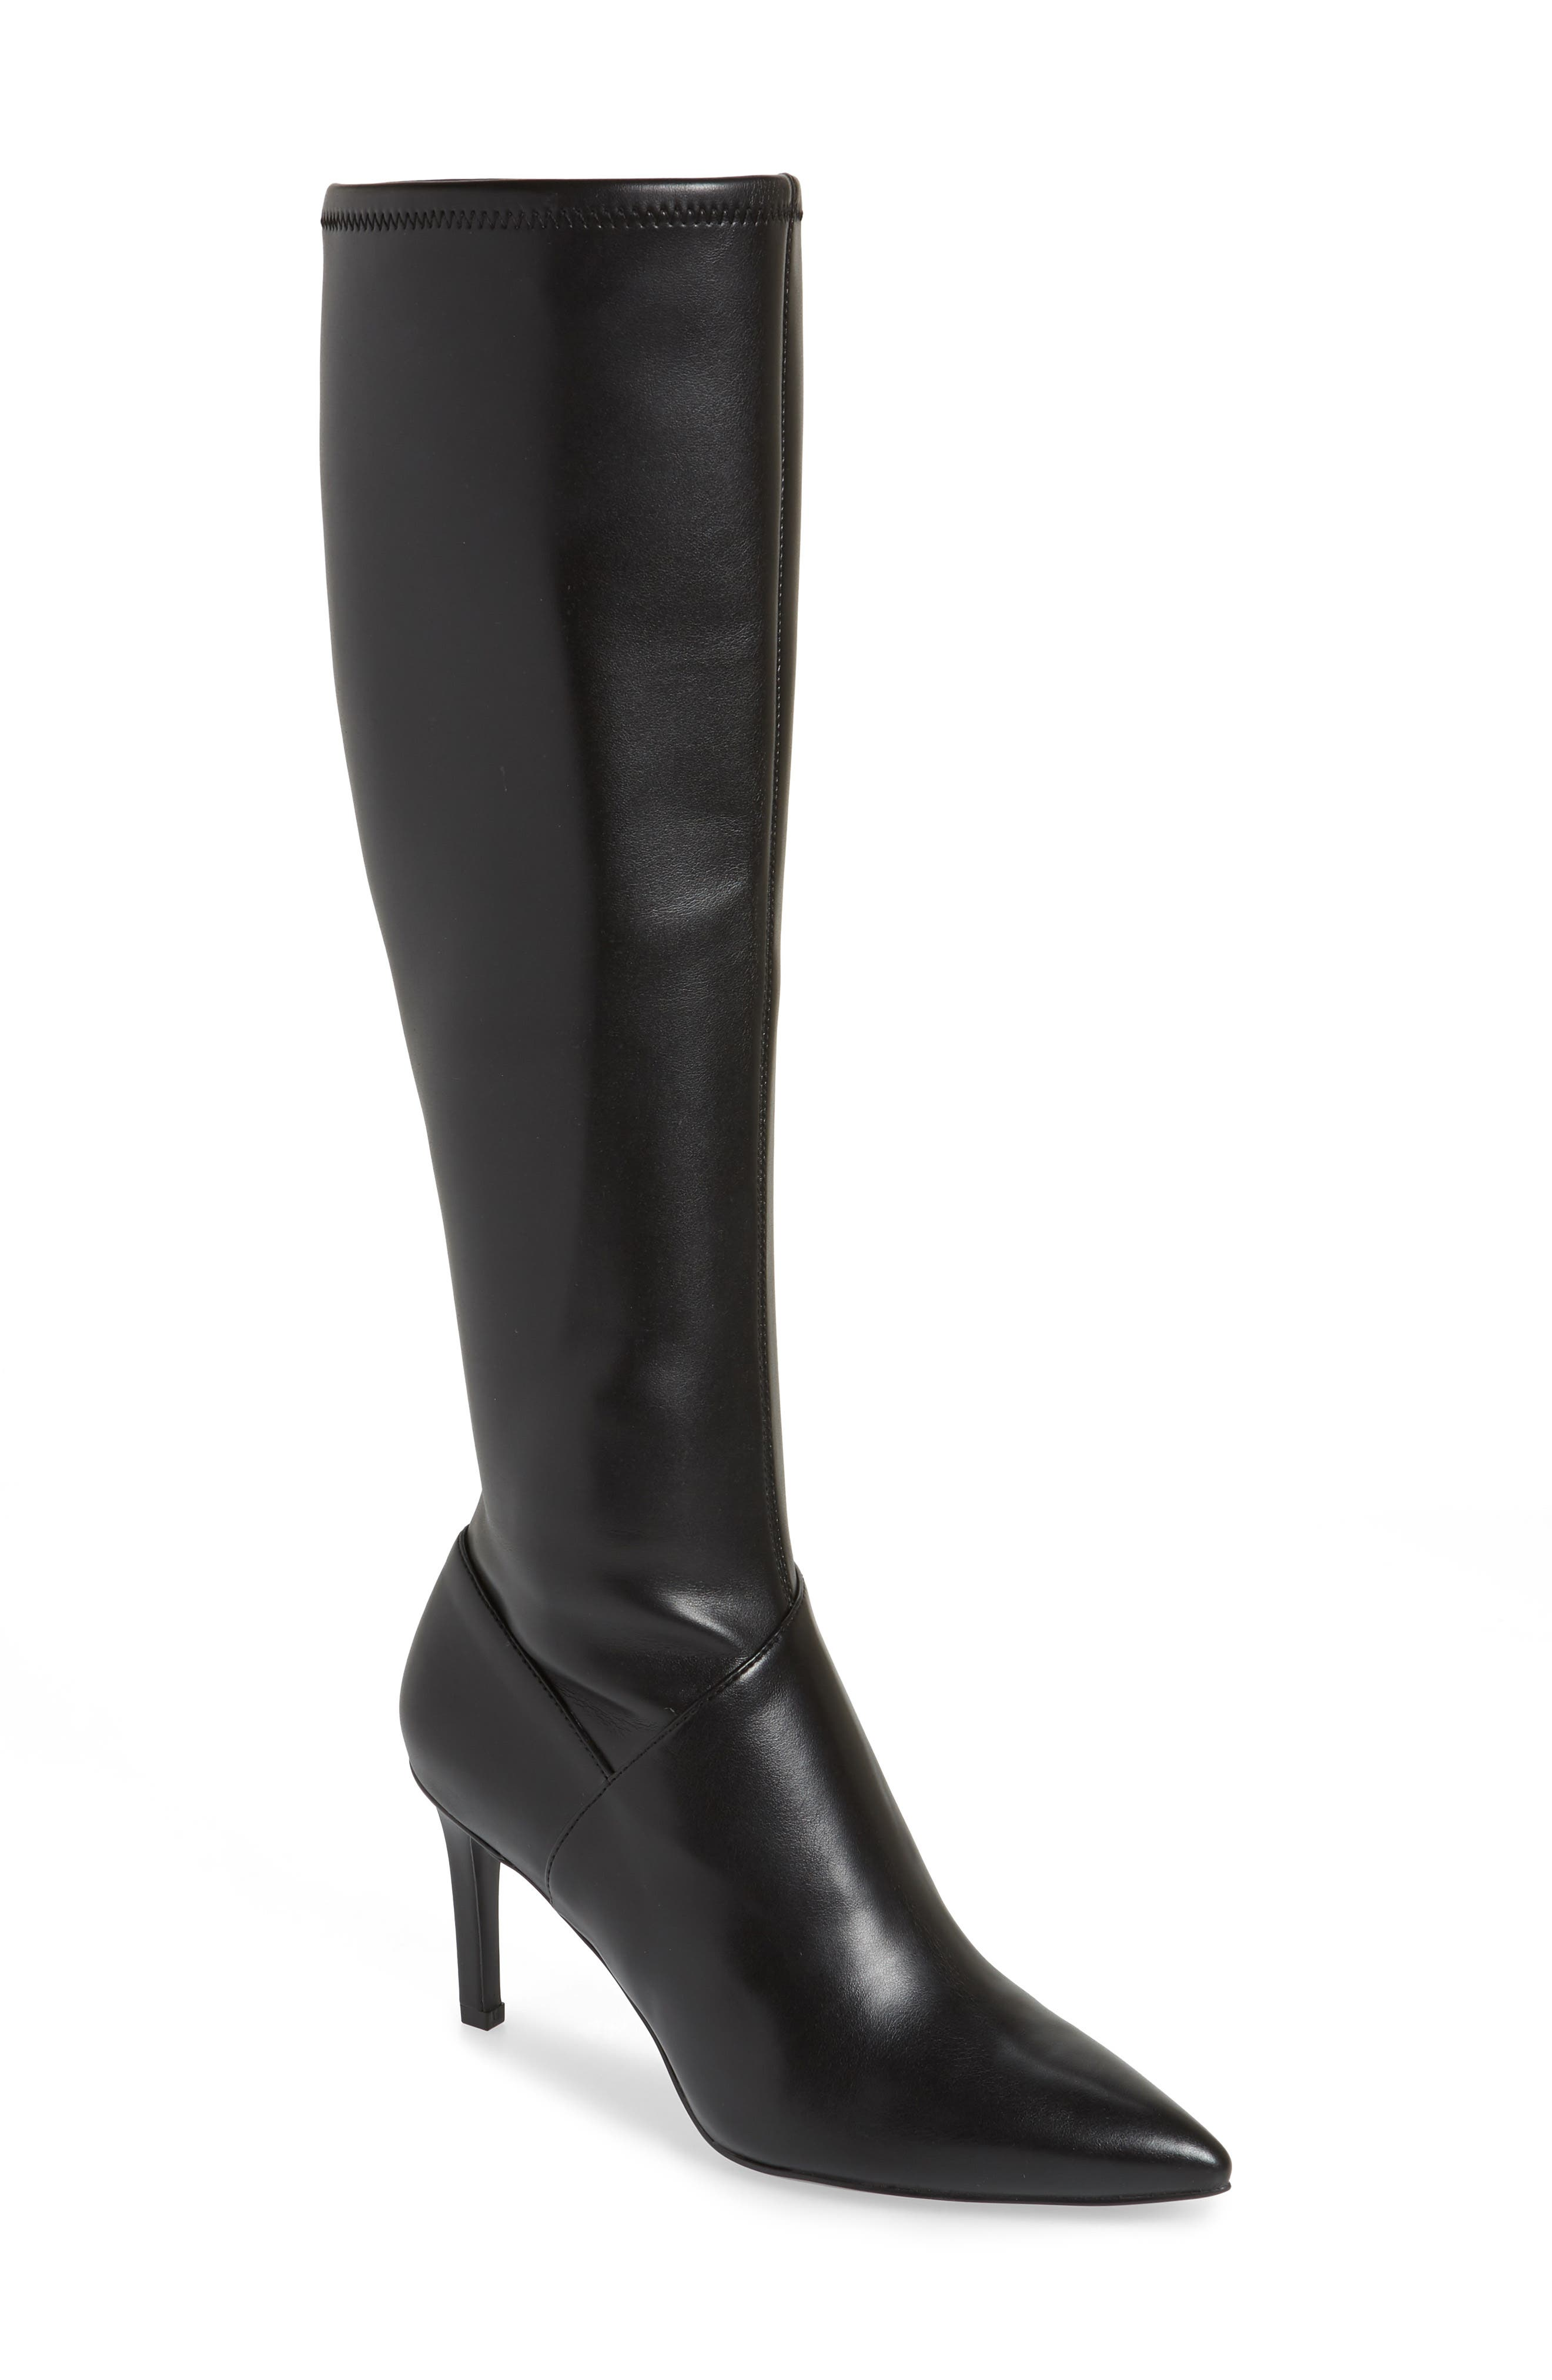 Chelsis Knee High Boot,                             Main thumbnail 1, color,                             BLACK FAUX LEATHER